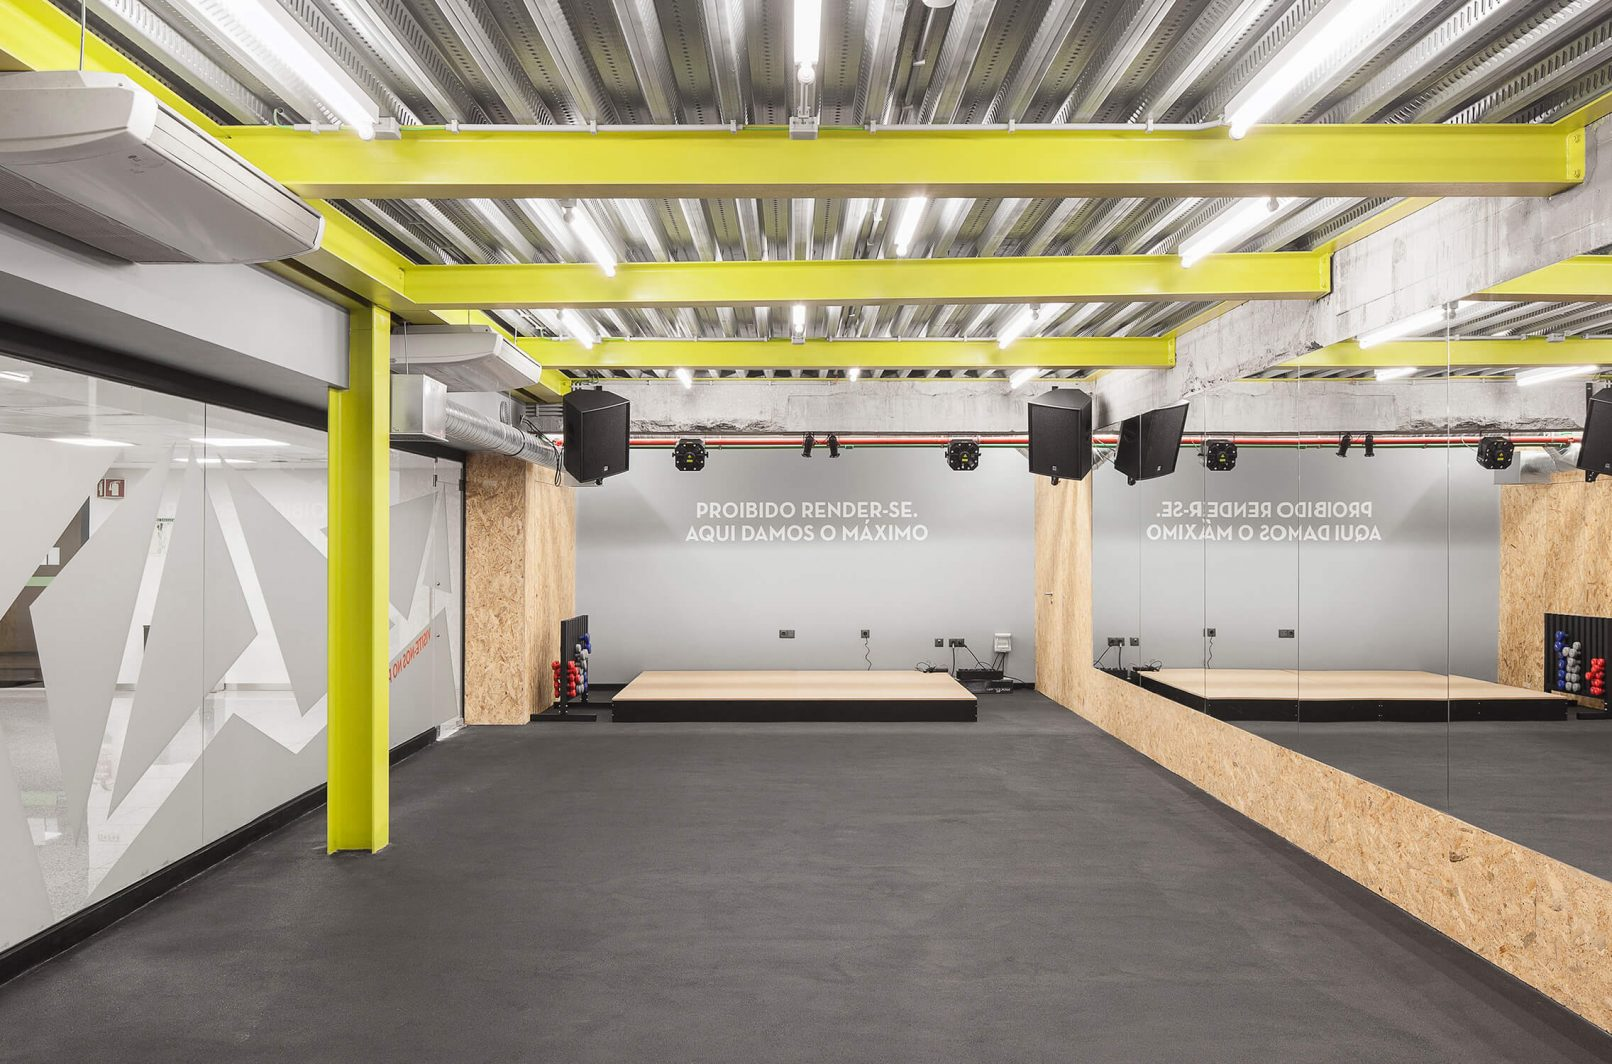 The beam structure that supports the ceiling was painted in yellow in order to give a distinct identity to the fitness studio compared to the other spaces.